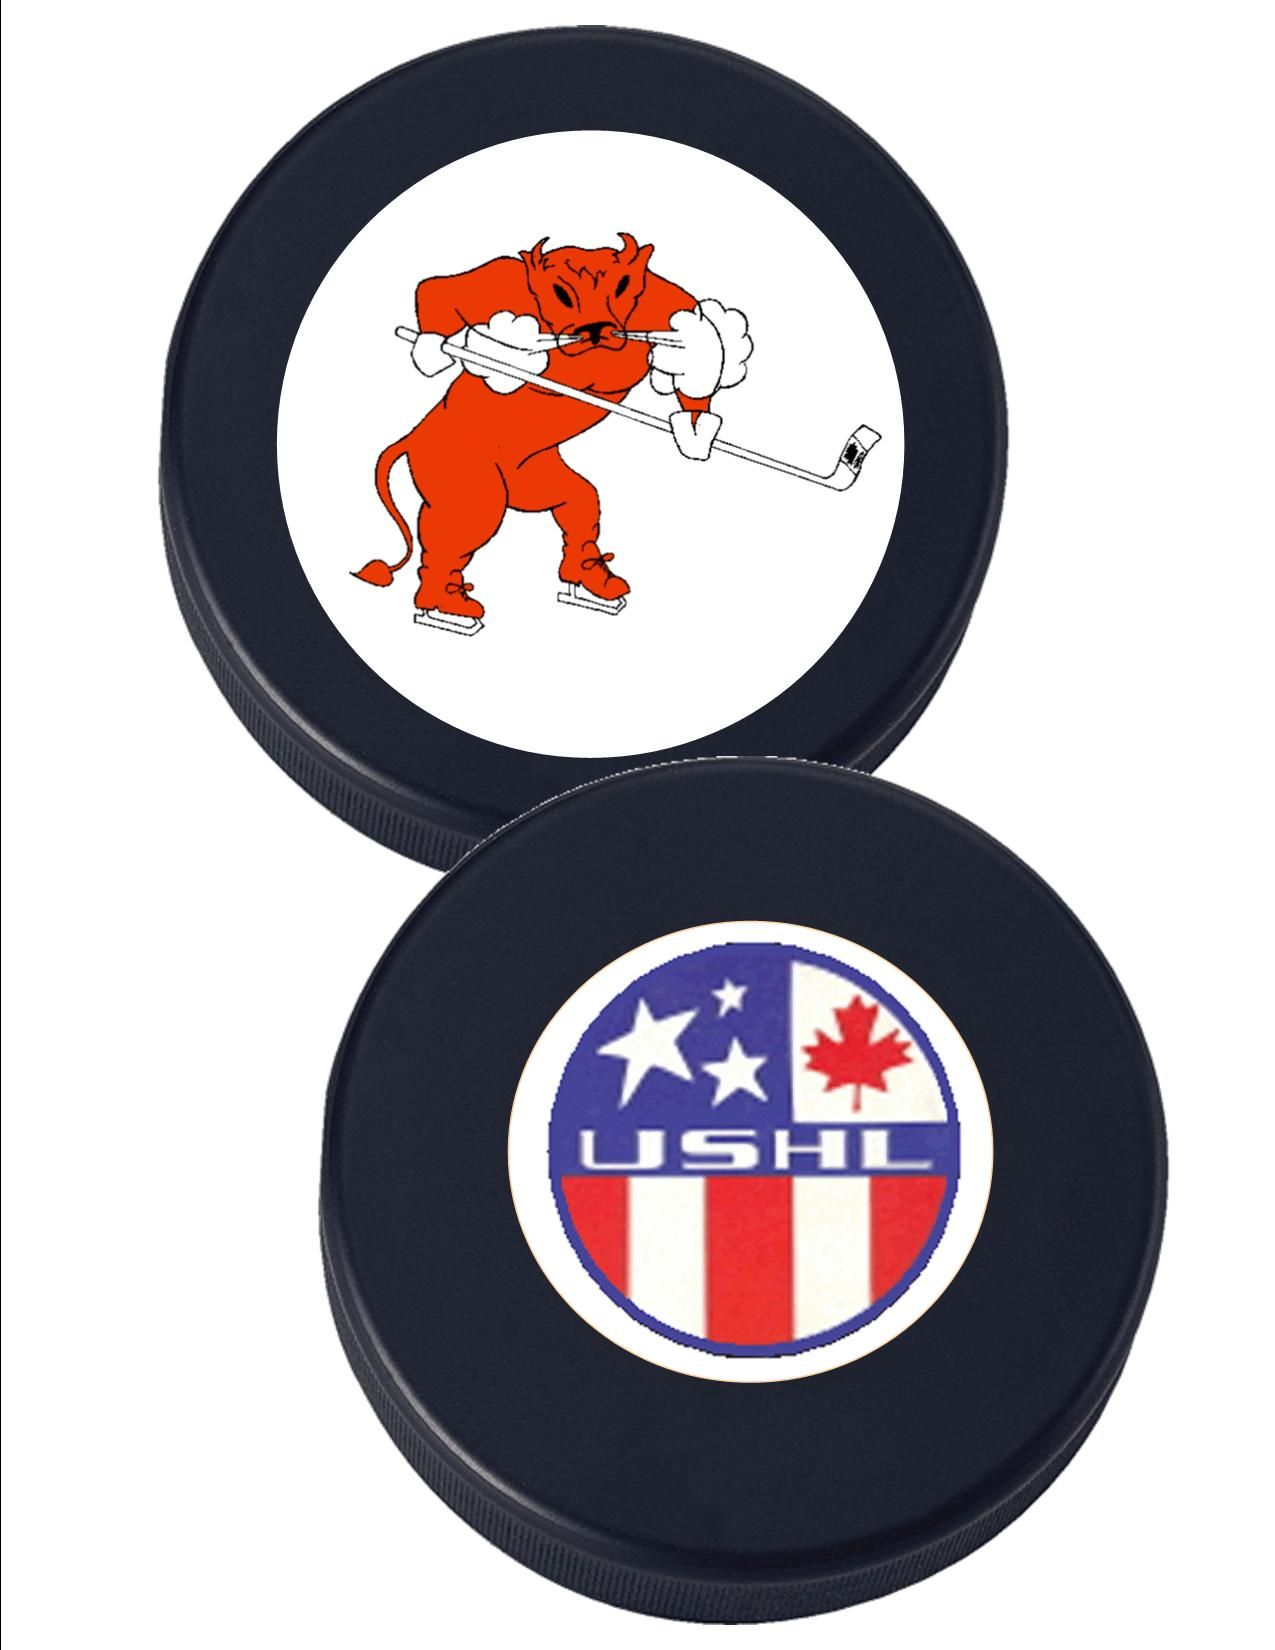 Hockey Logos Austin Mavericks Hockey Fun Puck Official Weight 6oz Fun Puck